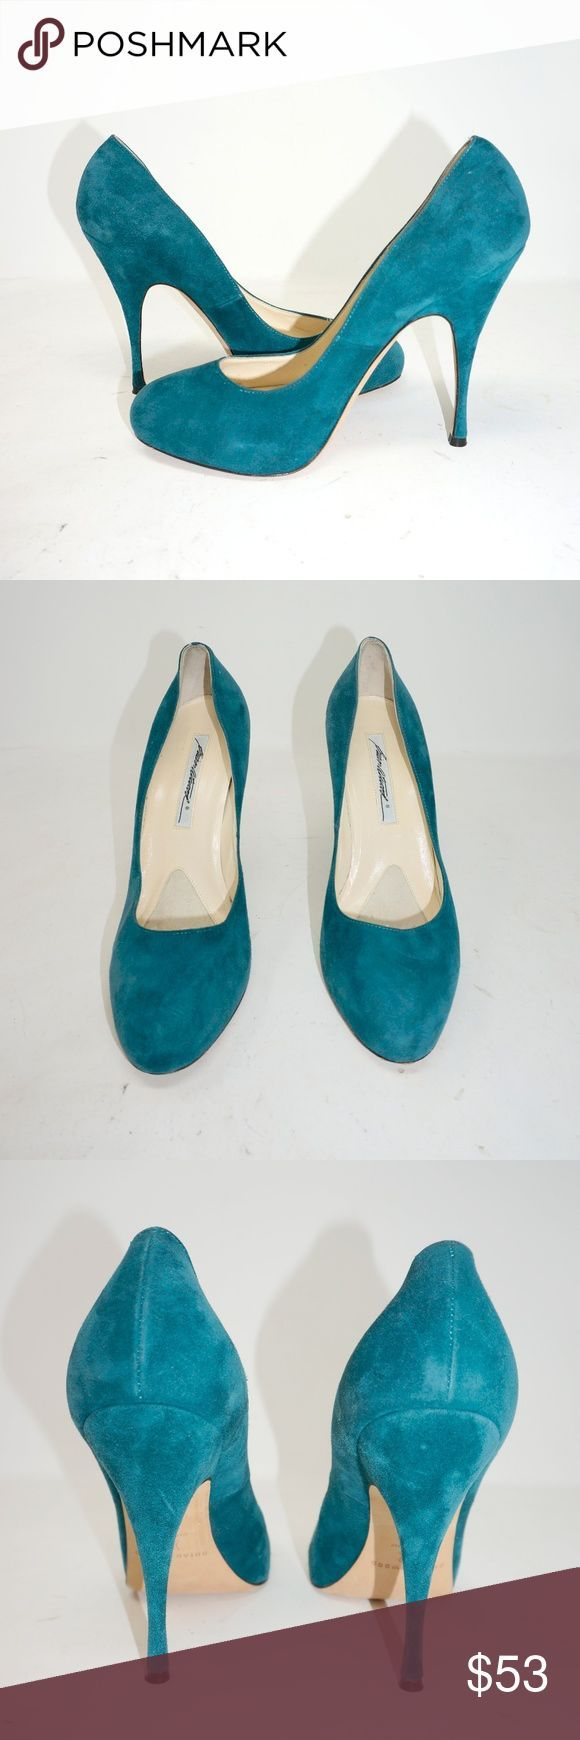 Suede Teal Brian Atwood Heels Suede Teal Heels, barely ever worn and in great co…,  #Atwood…